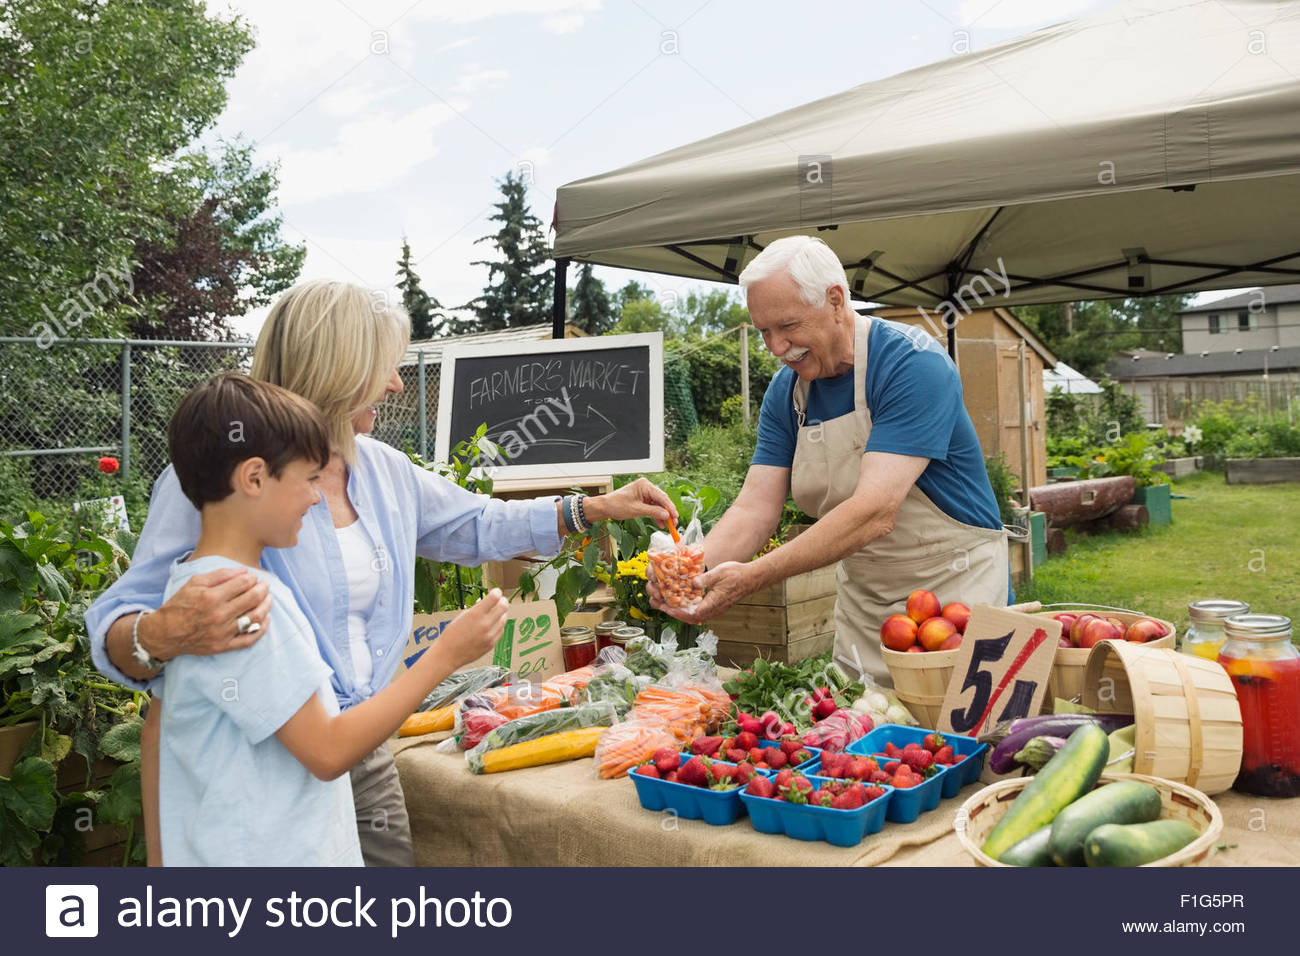 Farmer offering carrots to customers farmers market stall - Stock Image